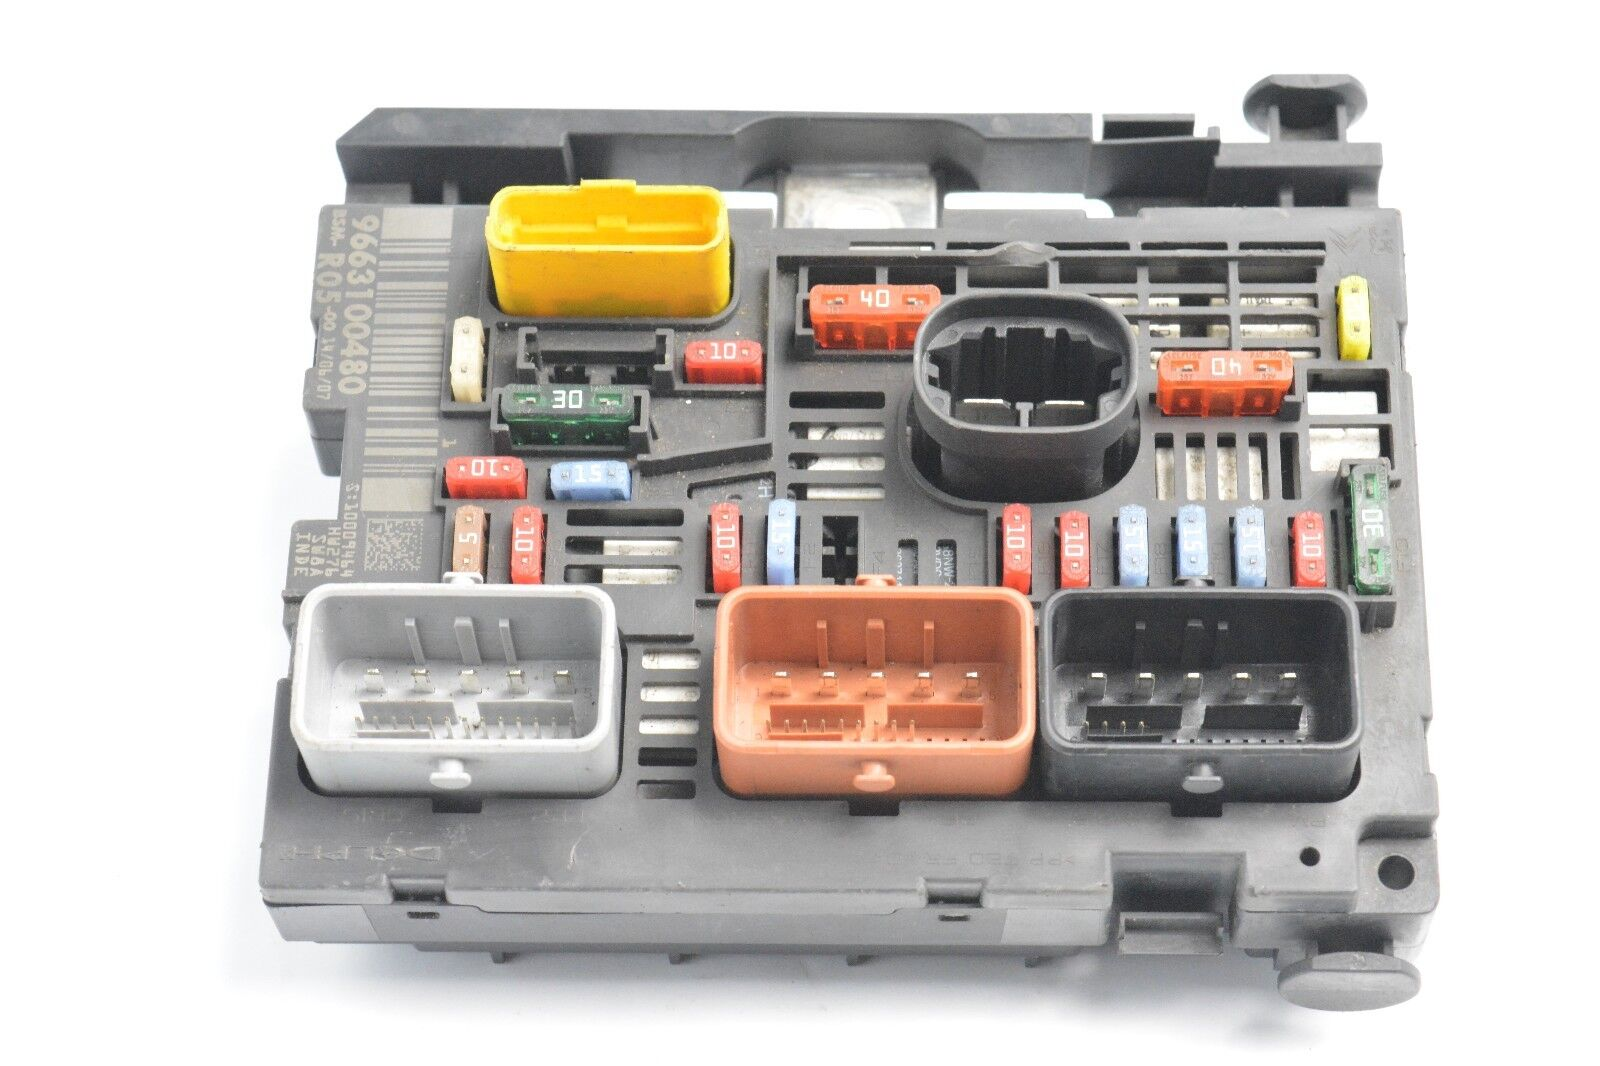 Peugeot 308 Citroen C5 2007 2011 16 Petrol Bsm Fuse Box 9663100480 1 Of 8only Available